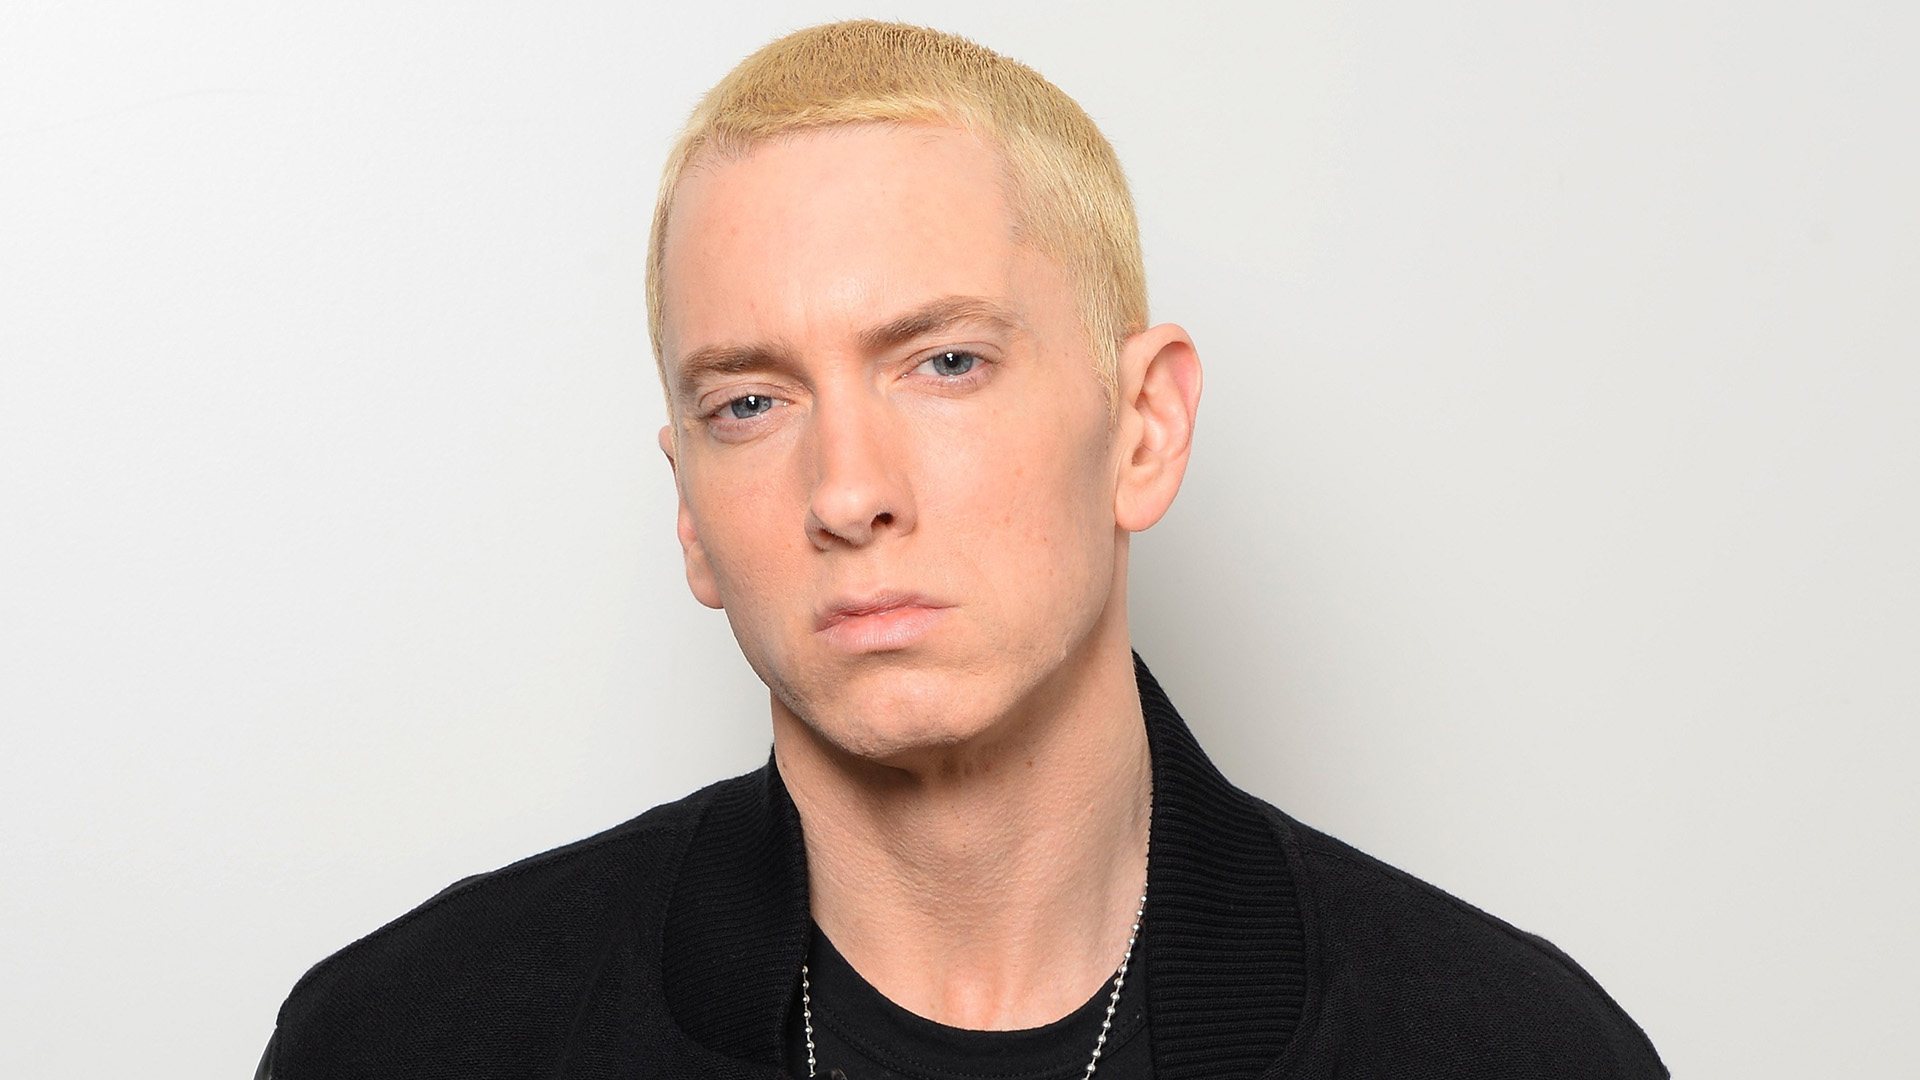 biography on eminem Shady xv eminem's new album just dropped - buy it now, the marshall mathers lp 2 the mmlp follow-up album - check it out, marshall bruce mathers iii eminem himself, the albums eminem's complete discography.